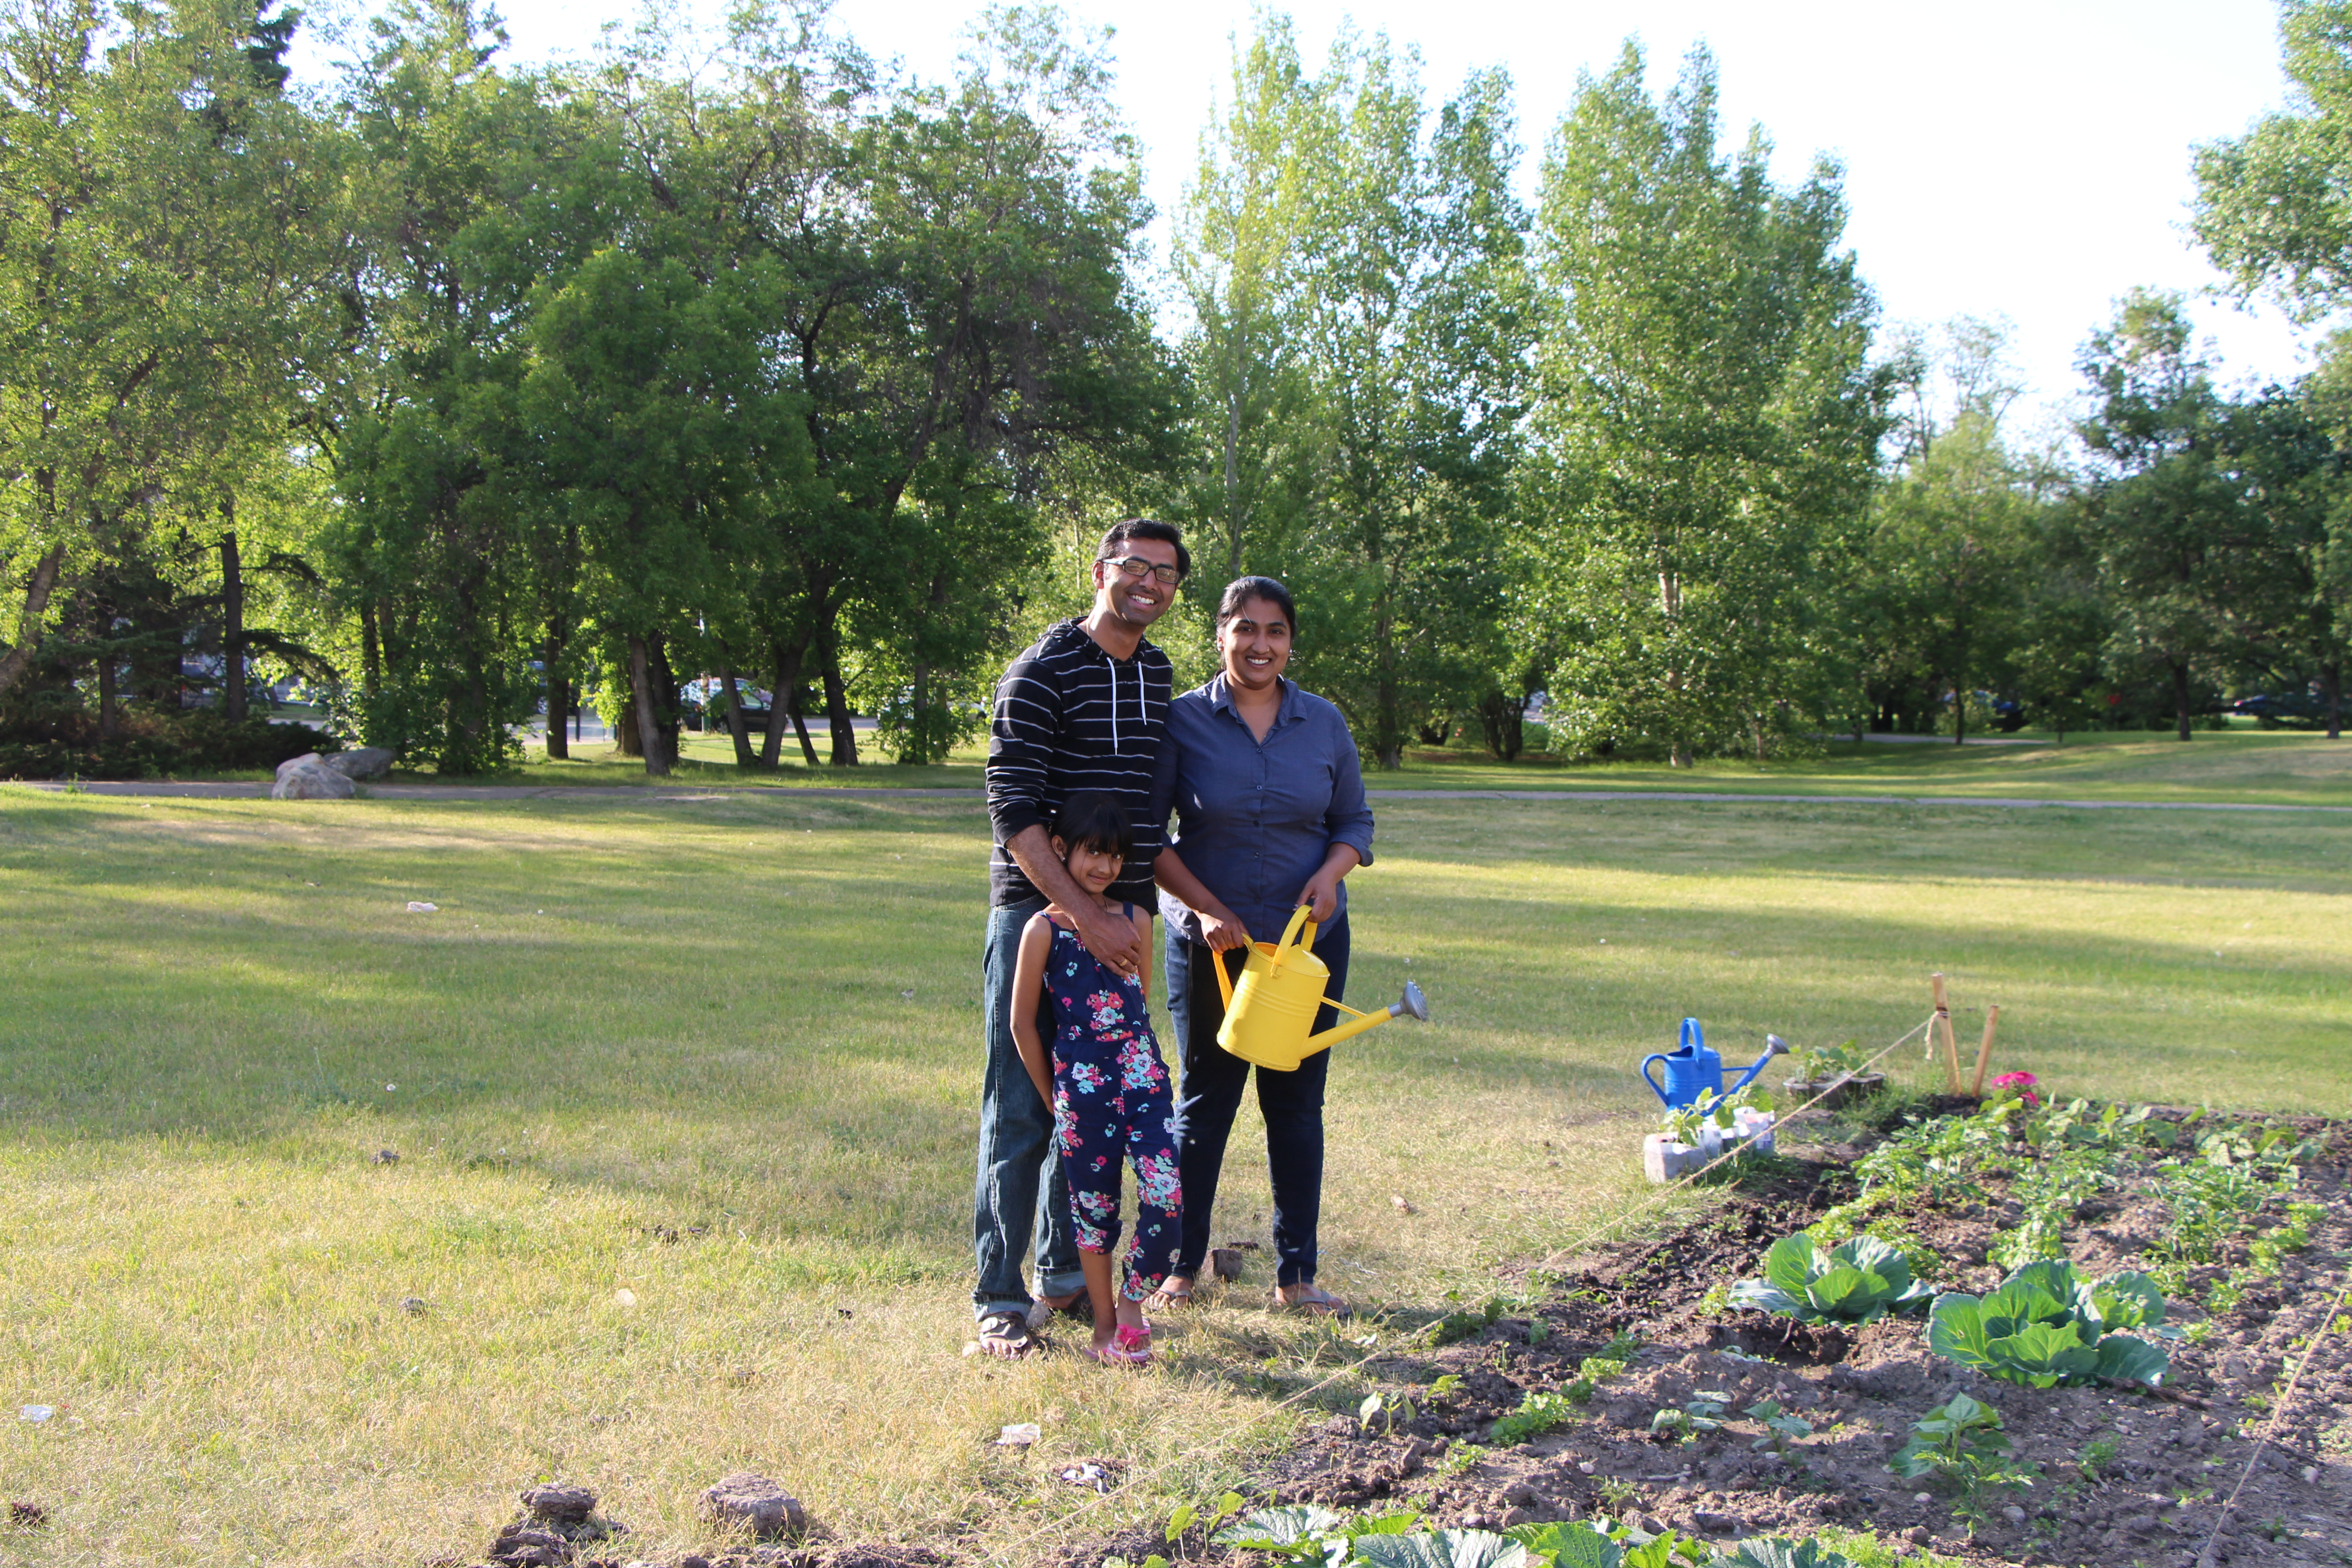 A family of gardeners at the McEown Community Garden